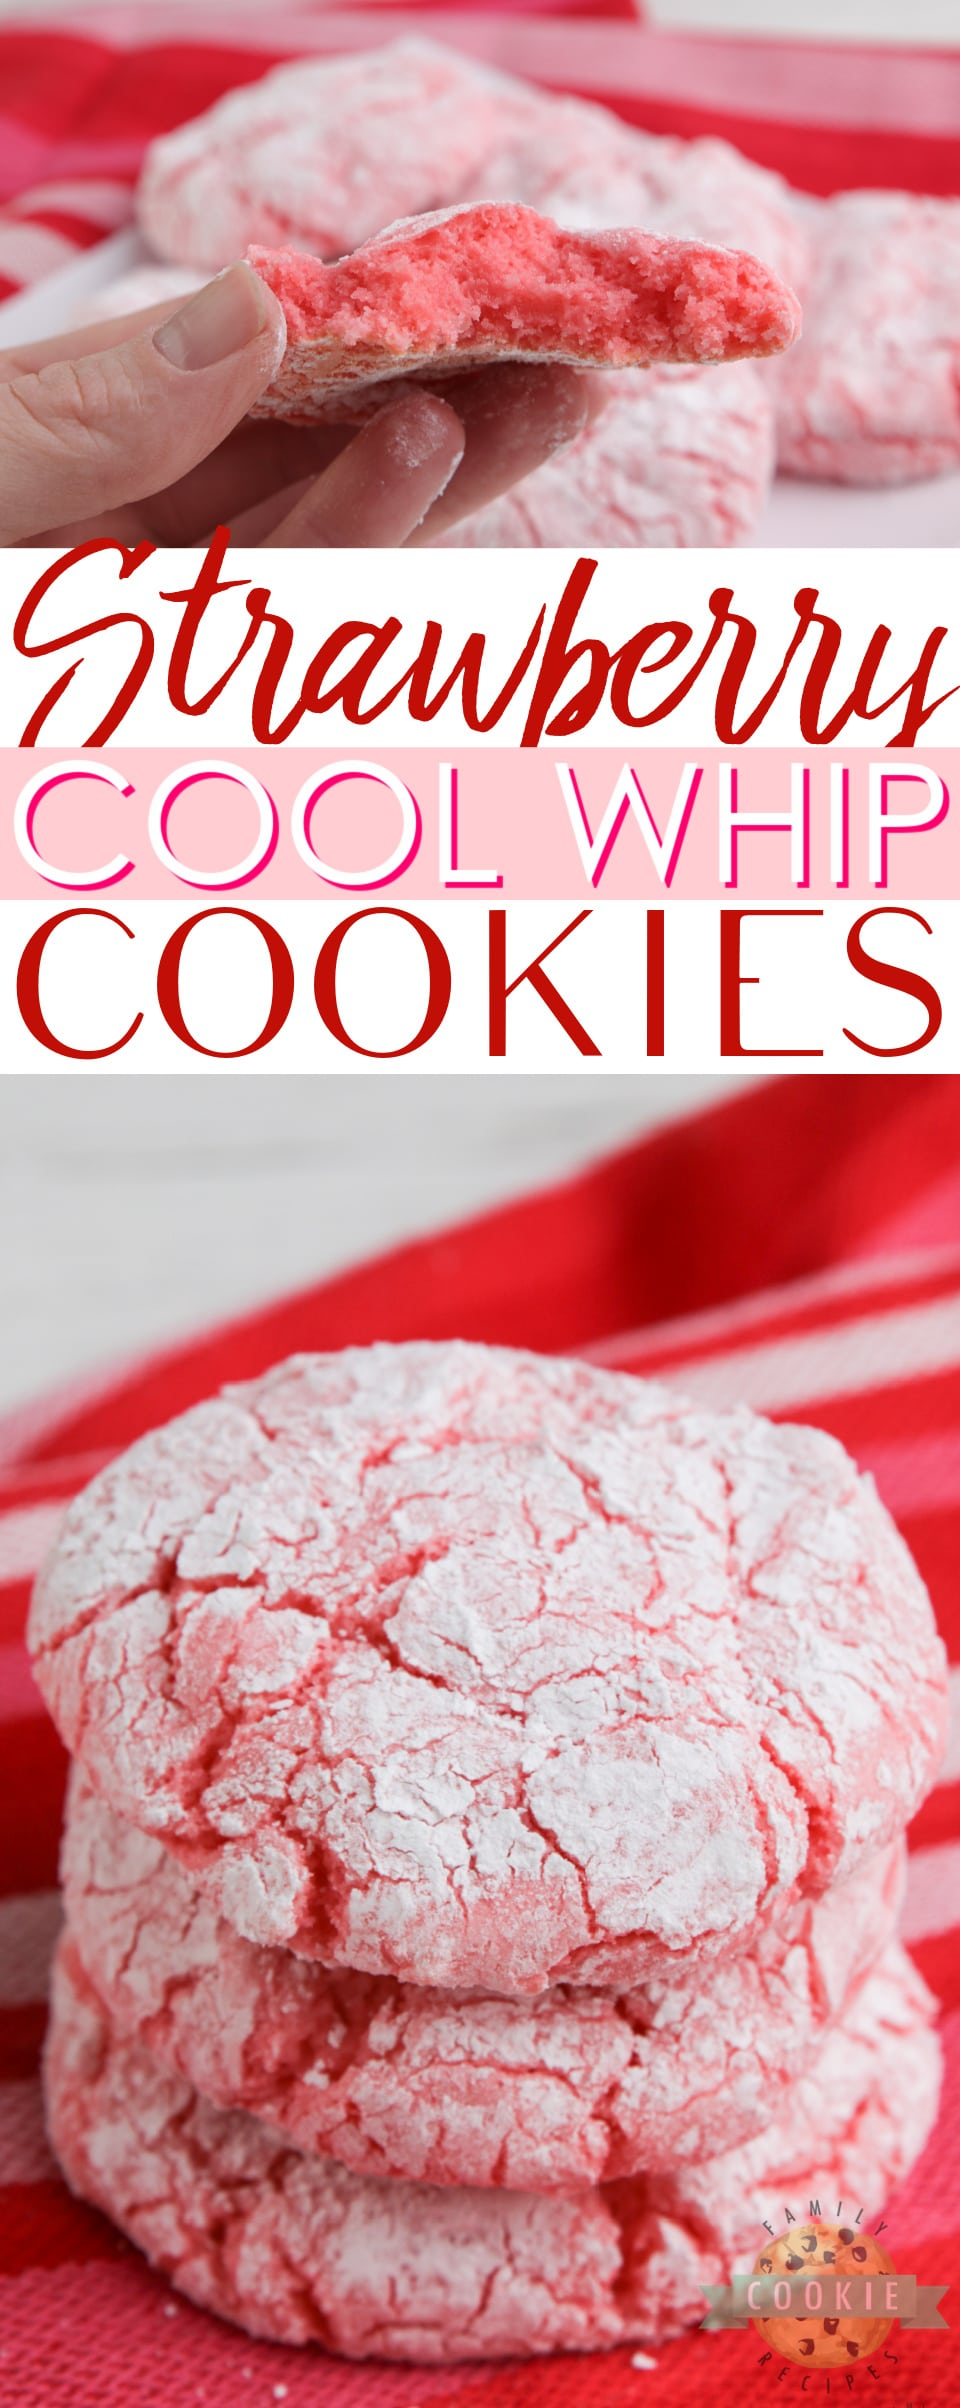 Strawberry Cool Whip Cookies made with a strawberry cake mix, Cool Whip and an egg. A lighter cookie recipe that is easy to make and with less calories than traditional cake mix cookies!